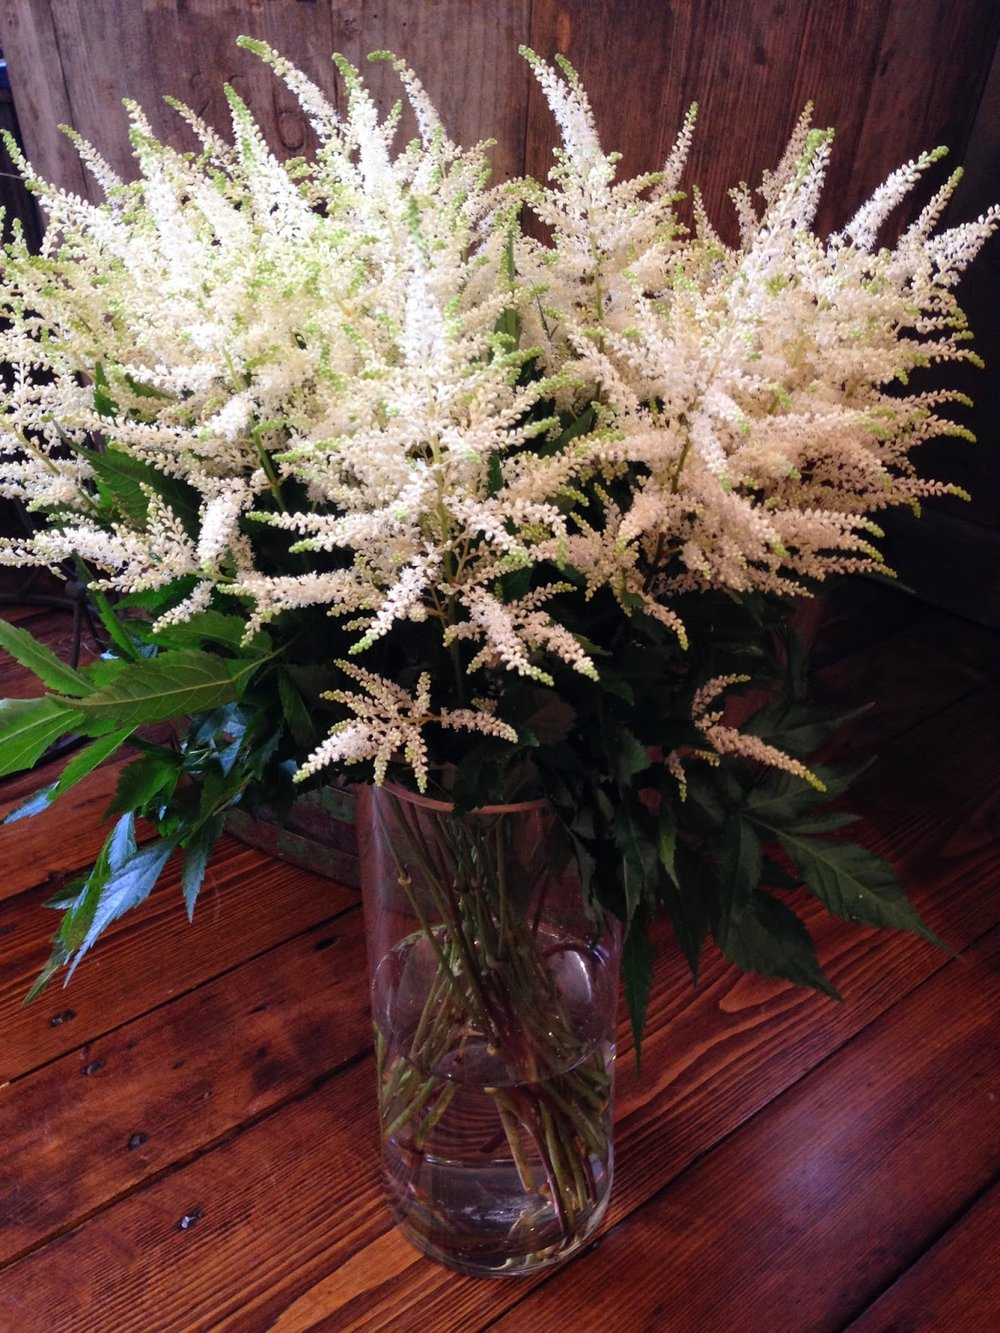 white astilbe : flower of the week : les fleurs : andover florist